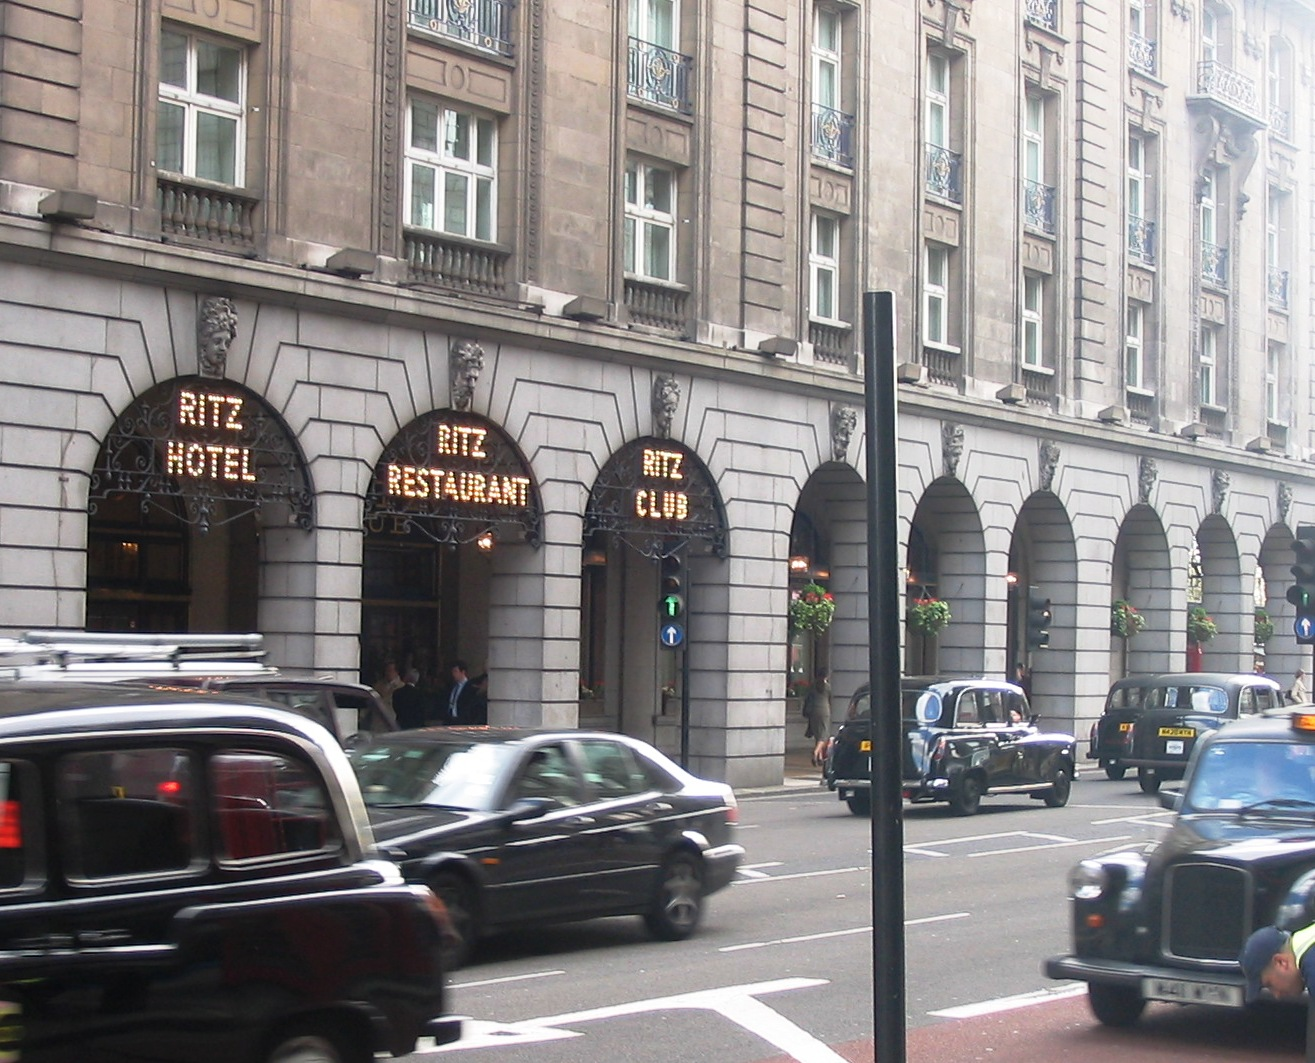 The_Ritz_on_Piccadilly.jpg